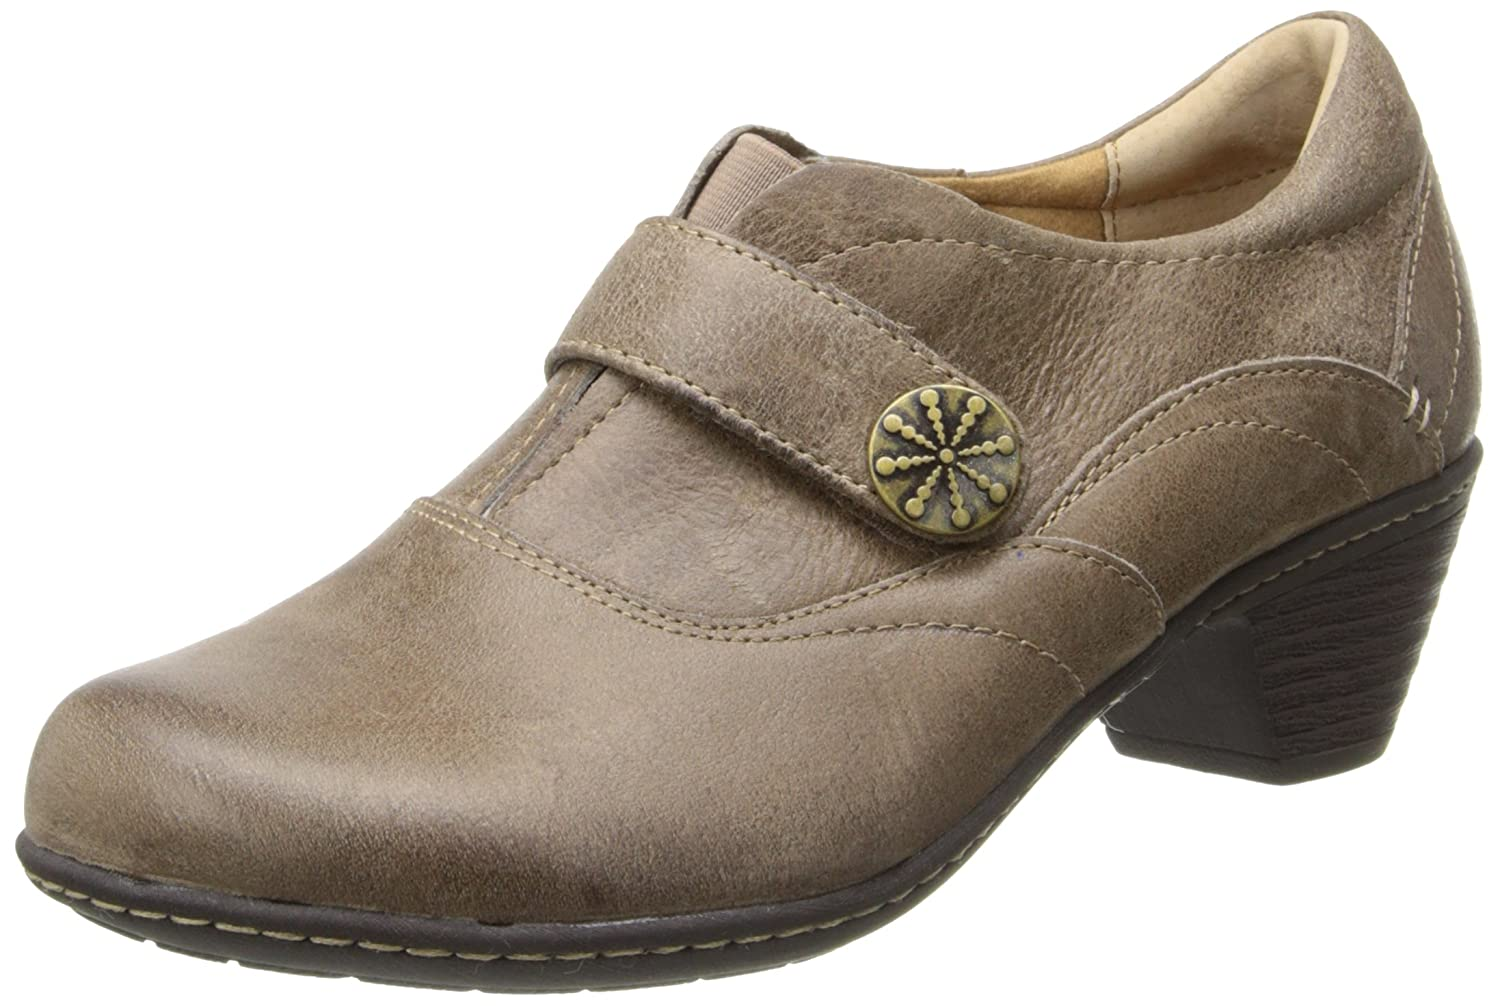 Women's Soft Spots, Sparrow Slip on Shoes